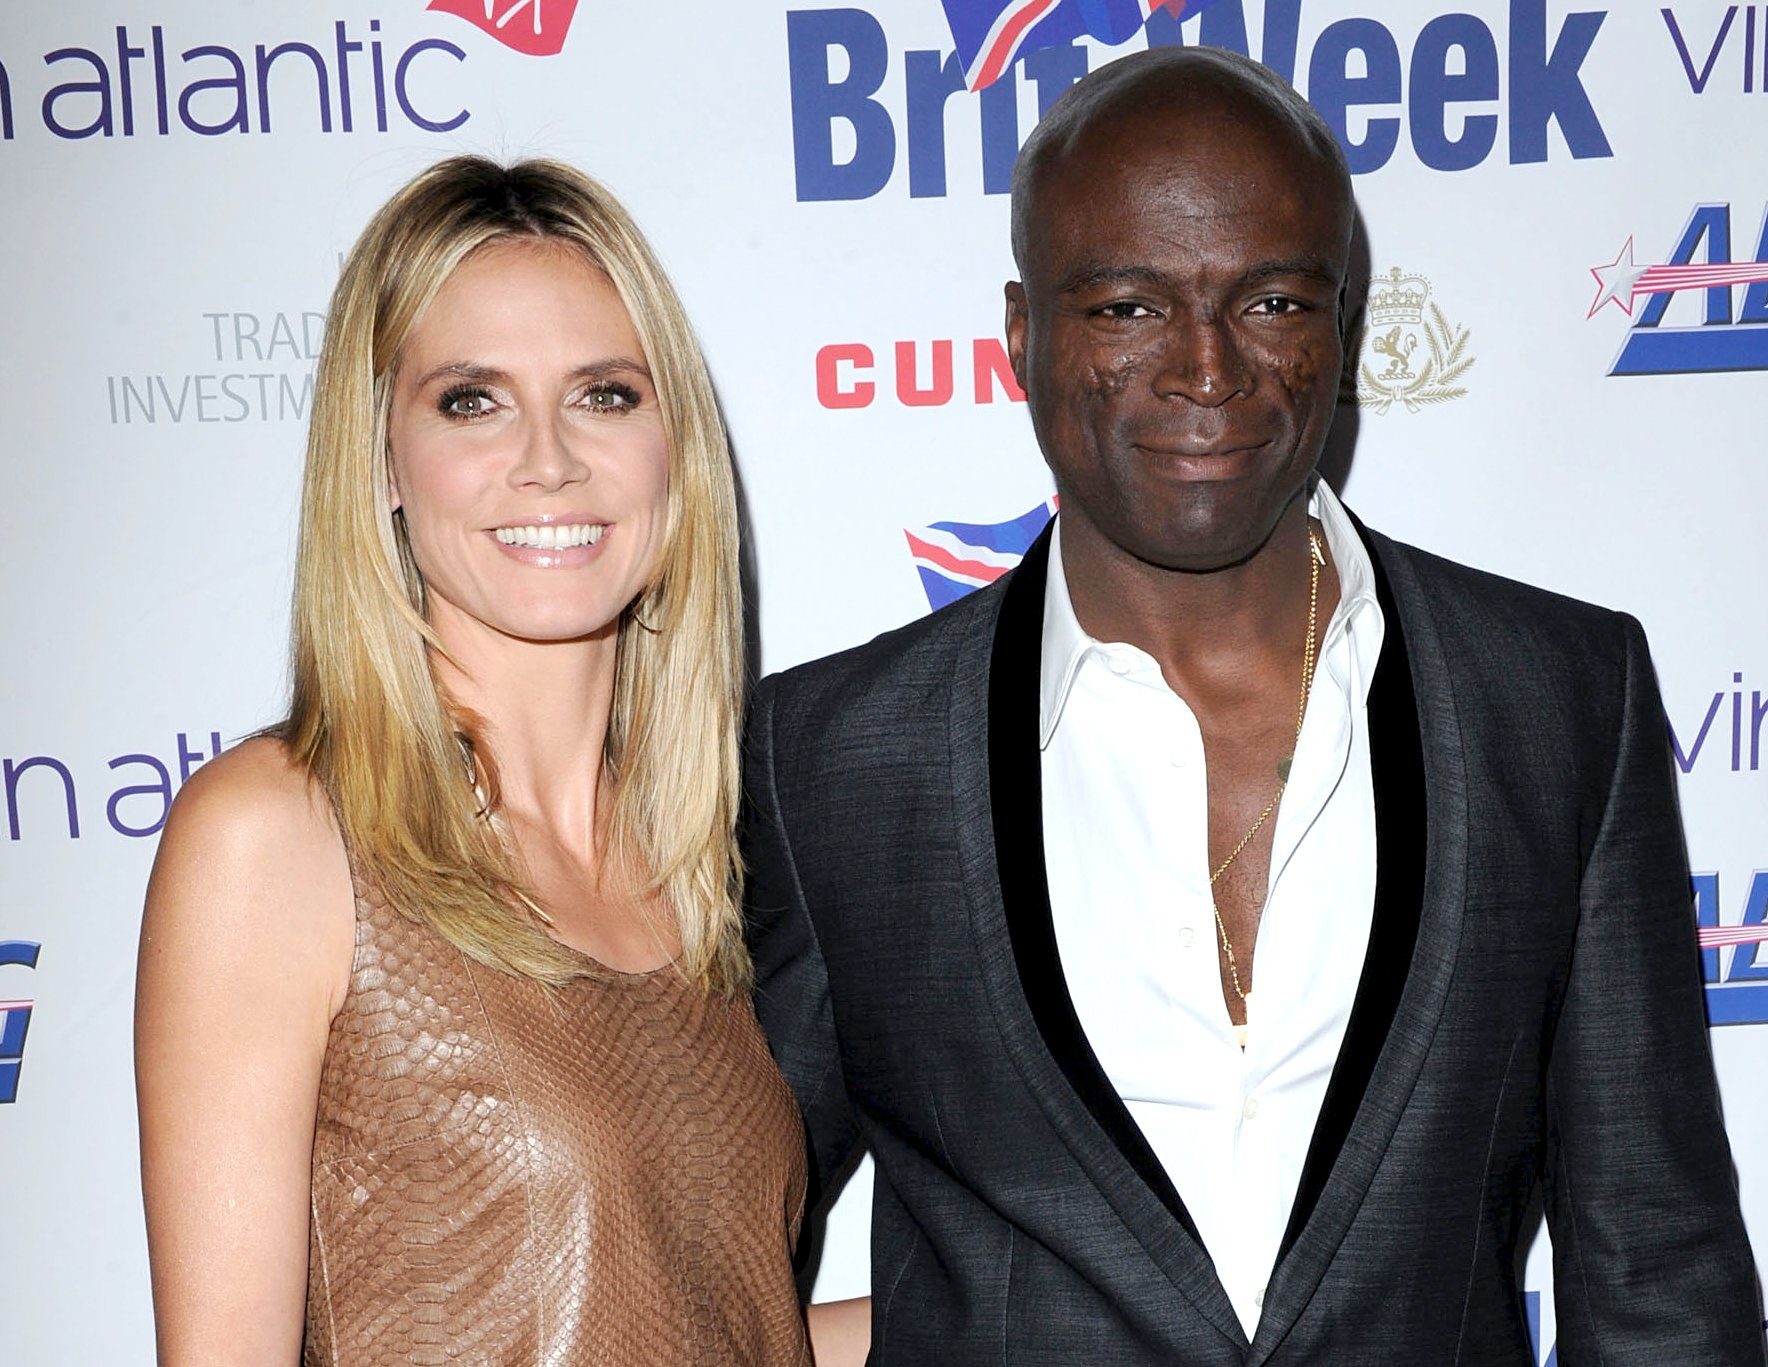 Heidi Klum with her formr husband Seal in the award ceremony